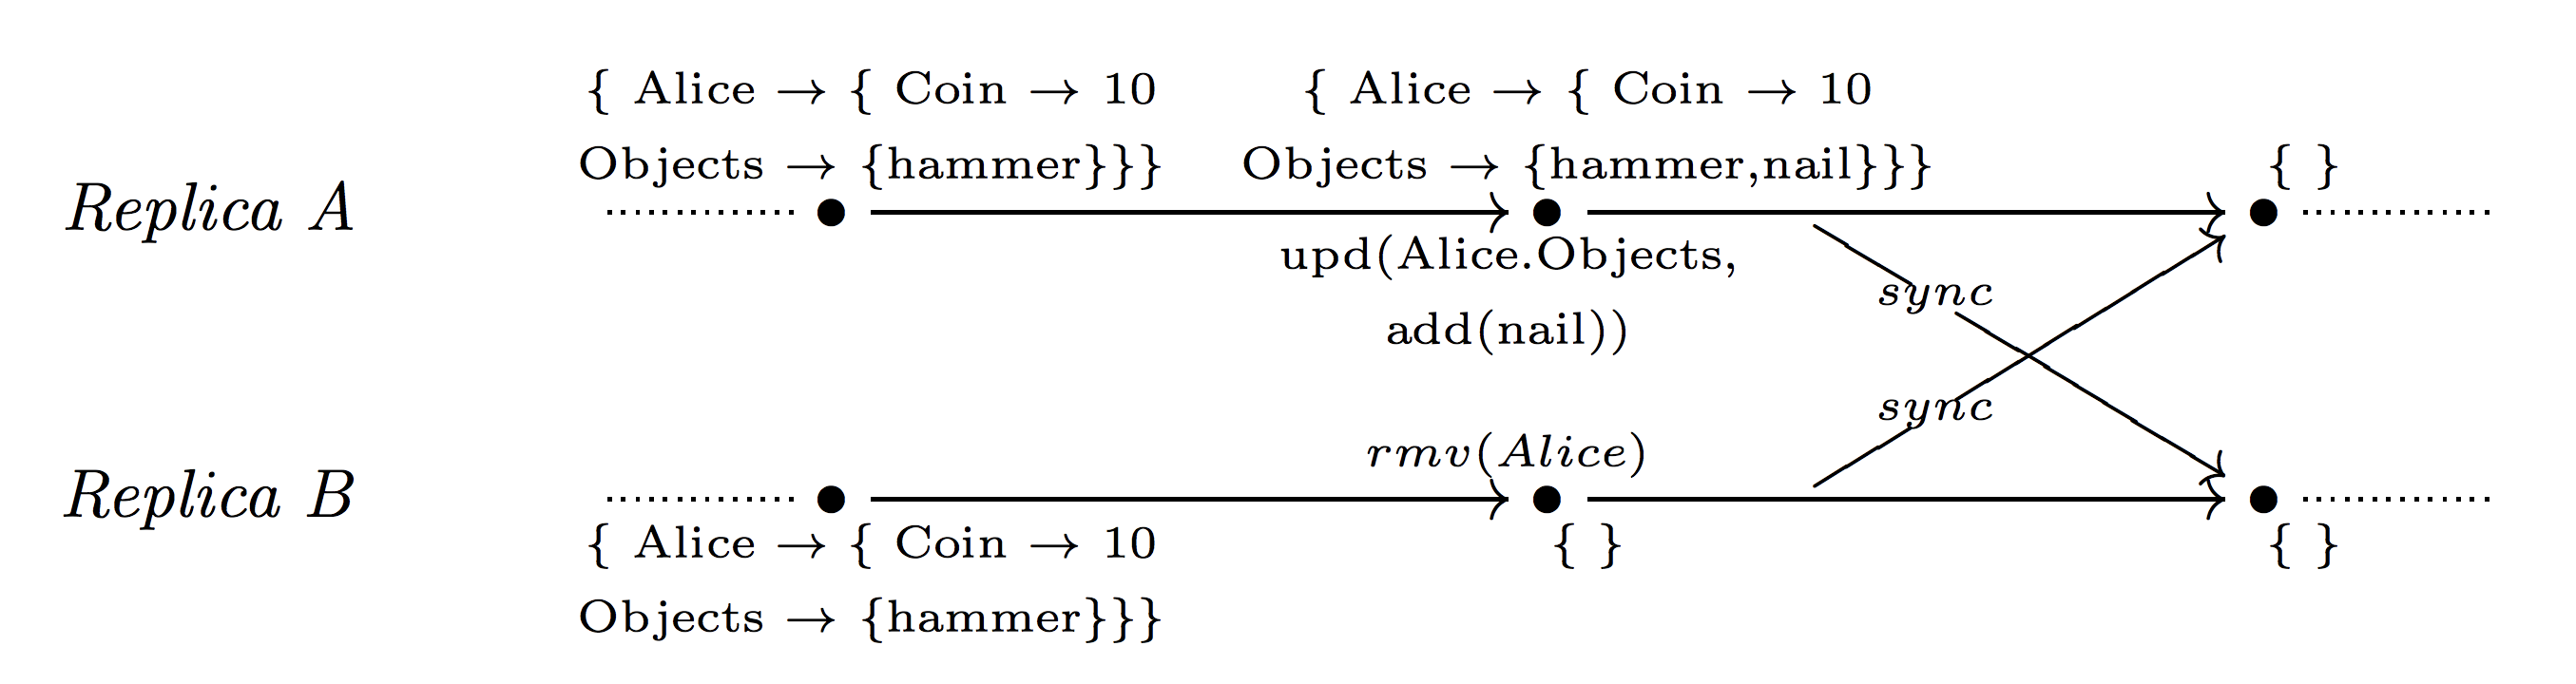 CRDT: Conflict-free Replicated Data Types - 23